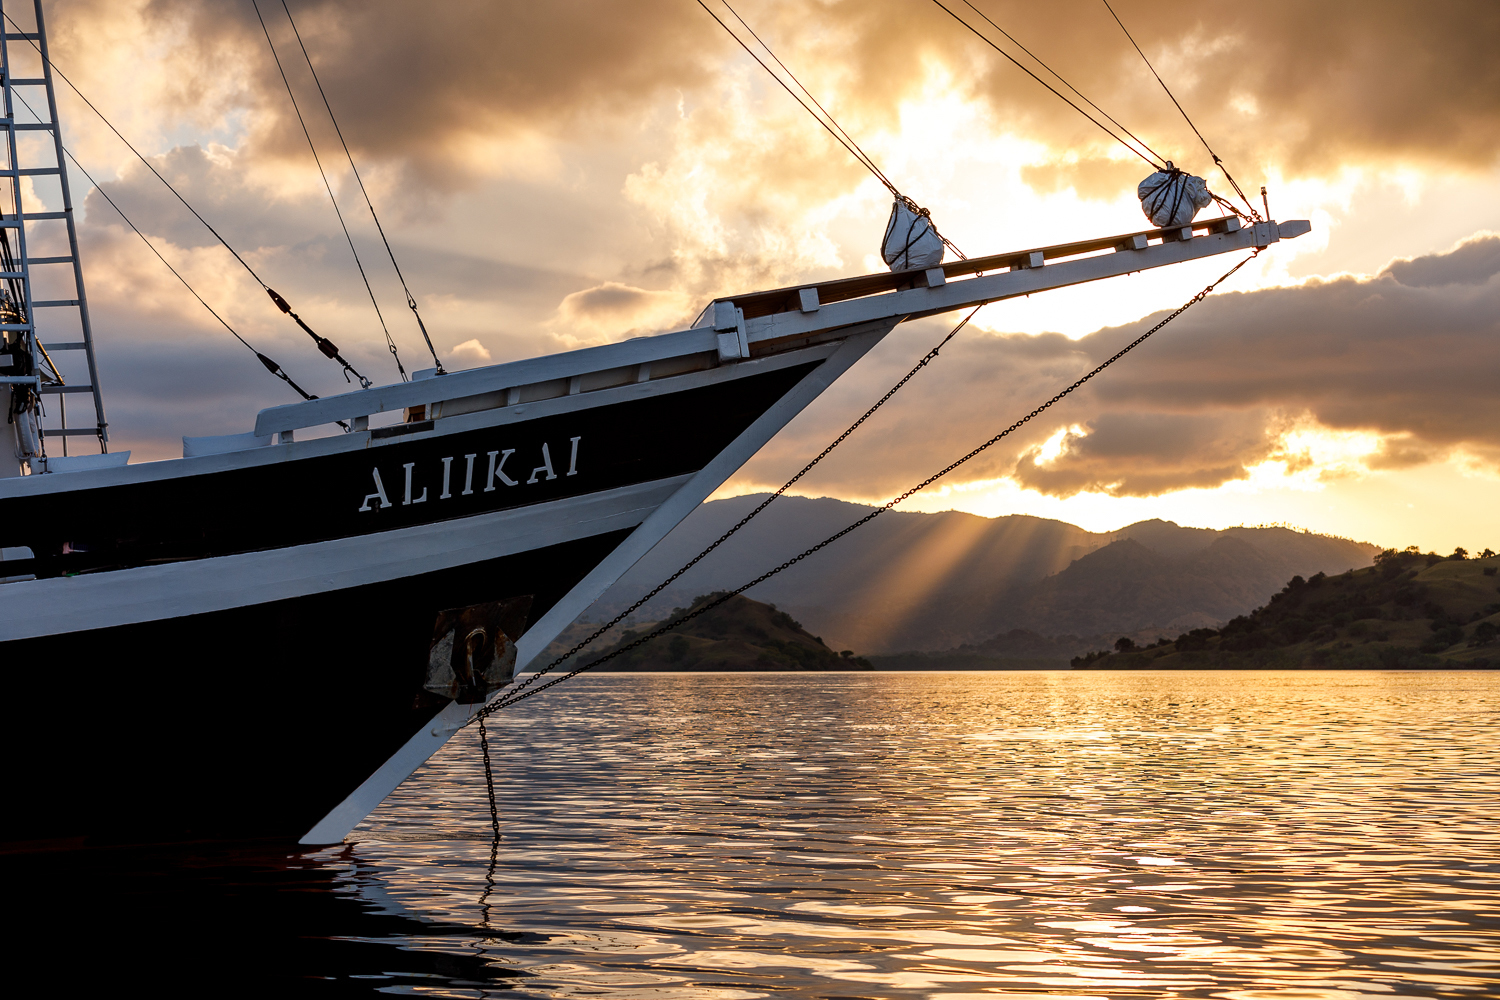 bow of Aliikai yacht with sunset in the background